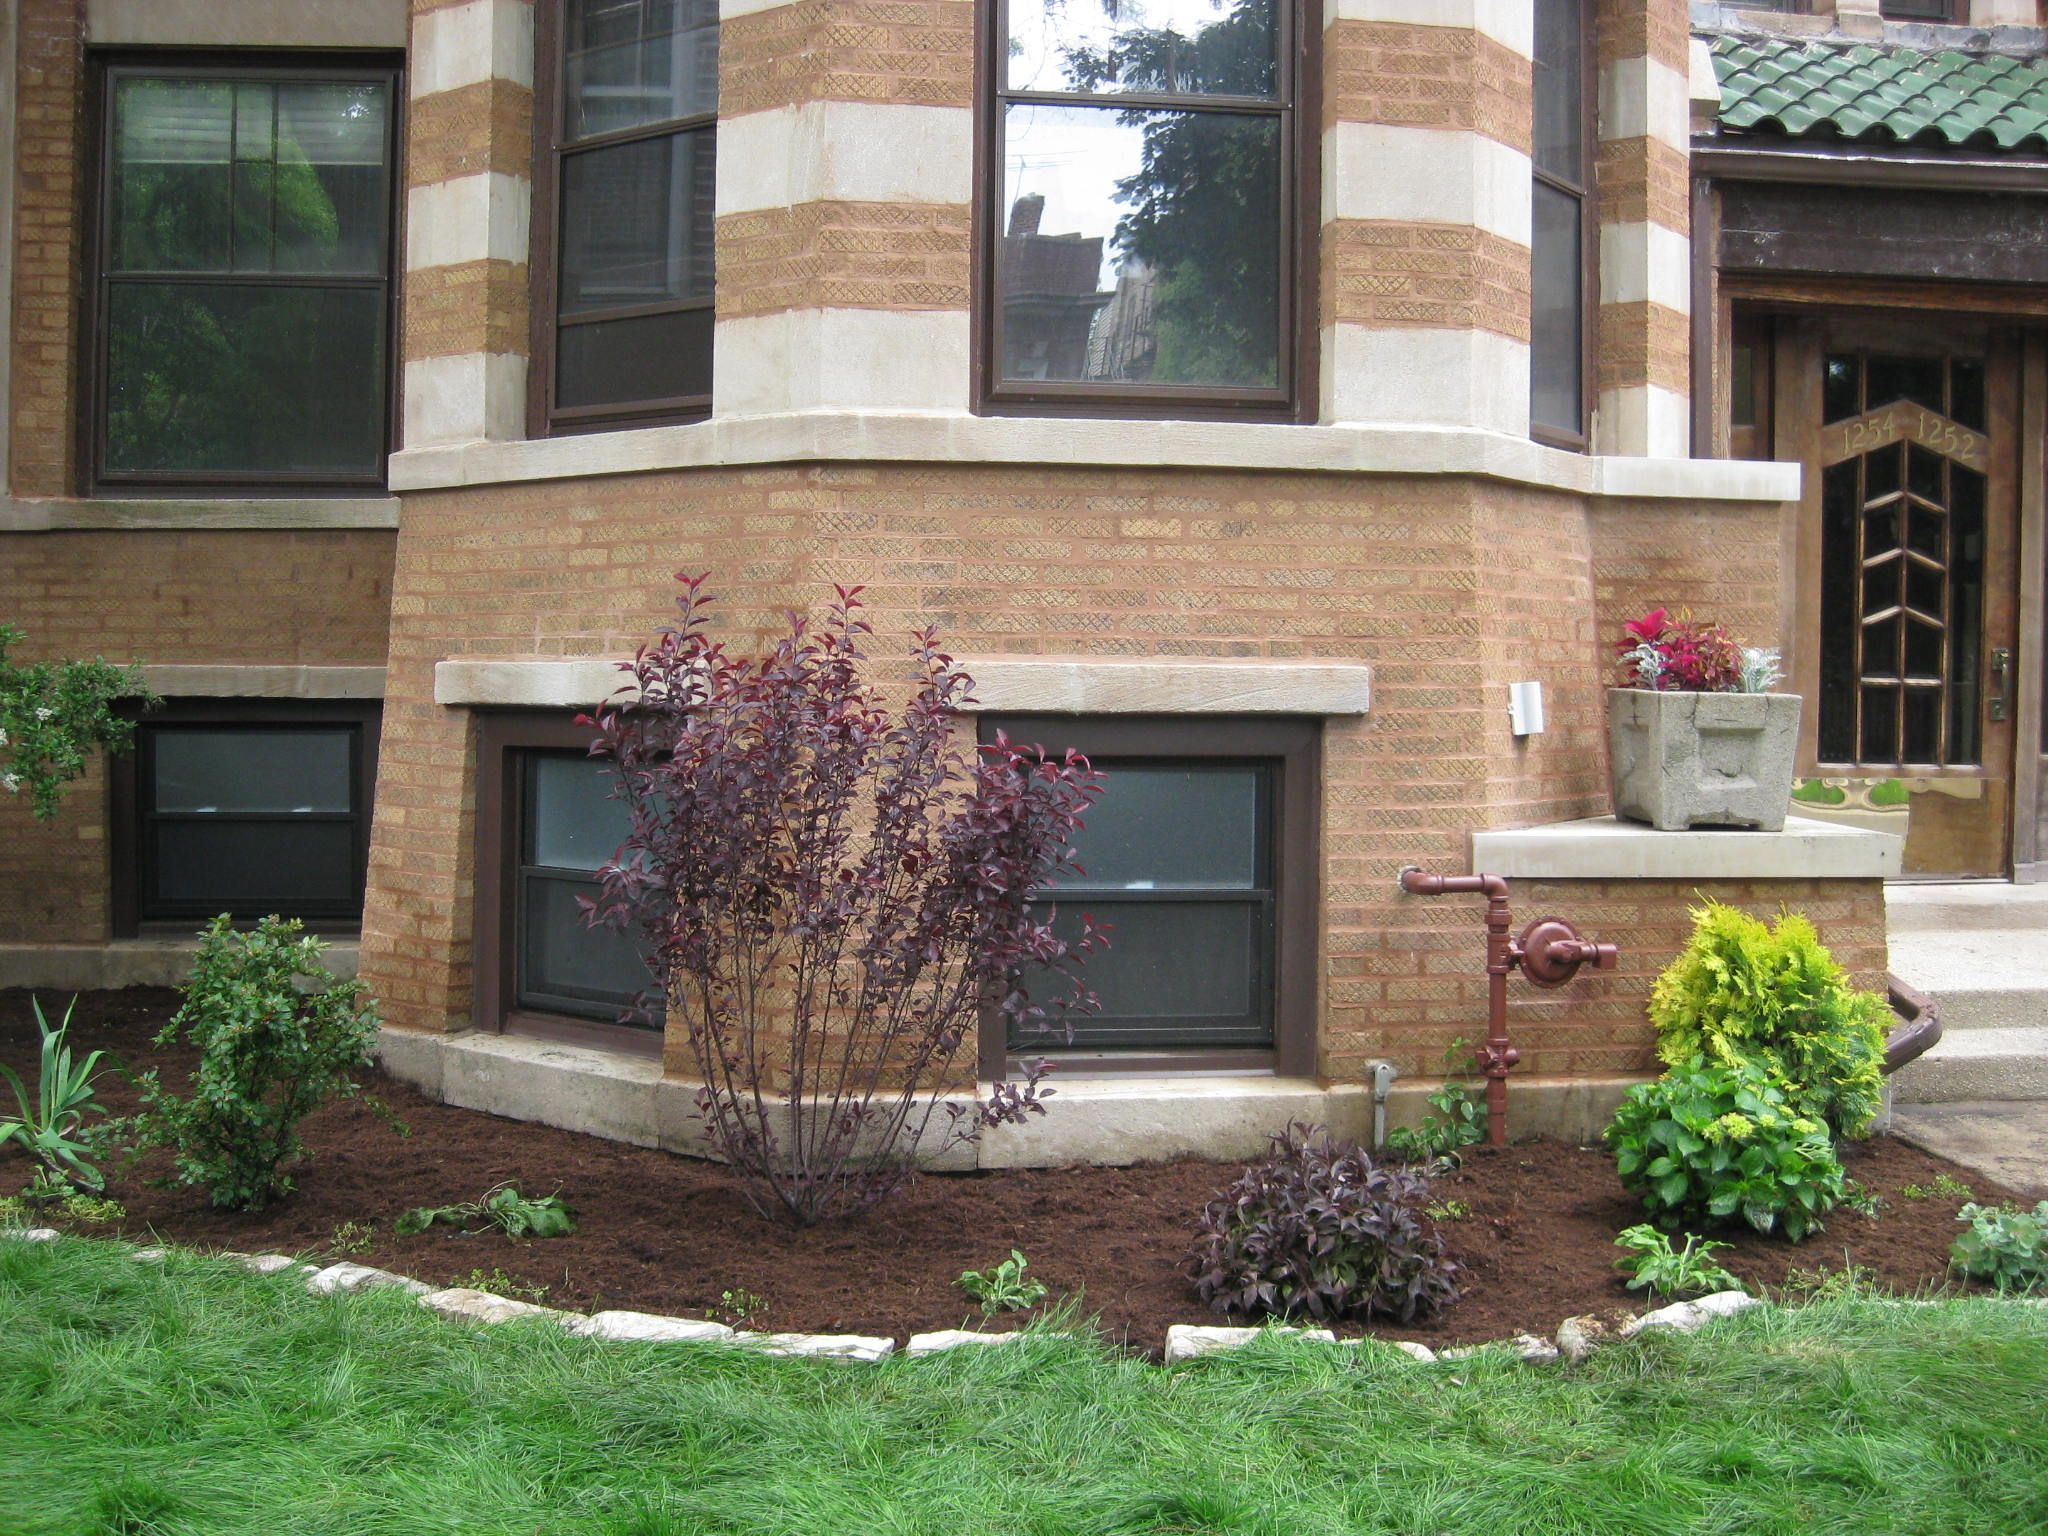 Front Yard Landscaping for a Condo in Chicago | Landscape ...